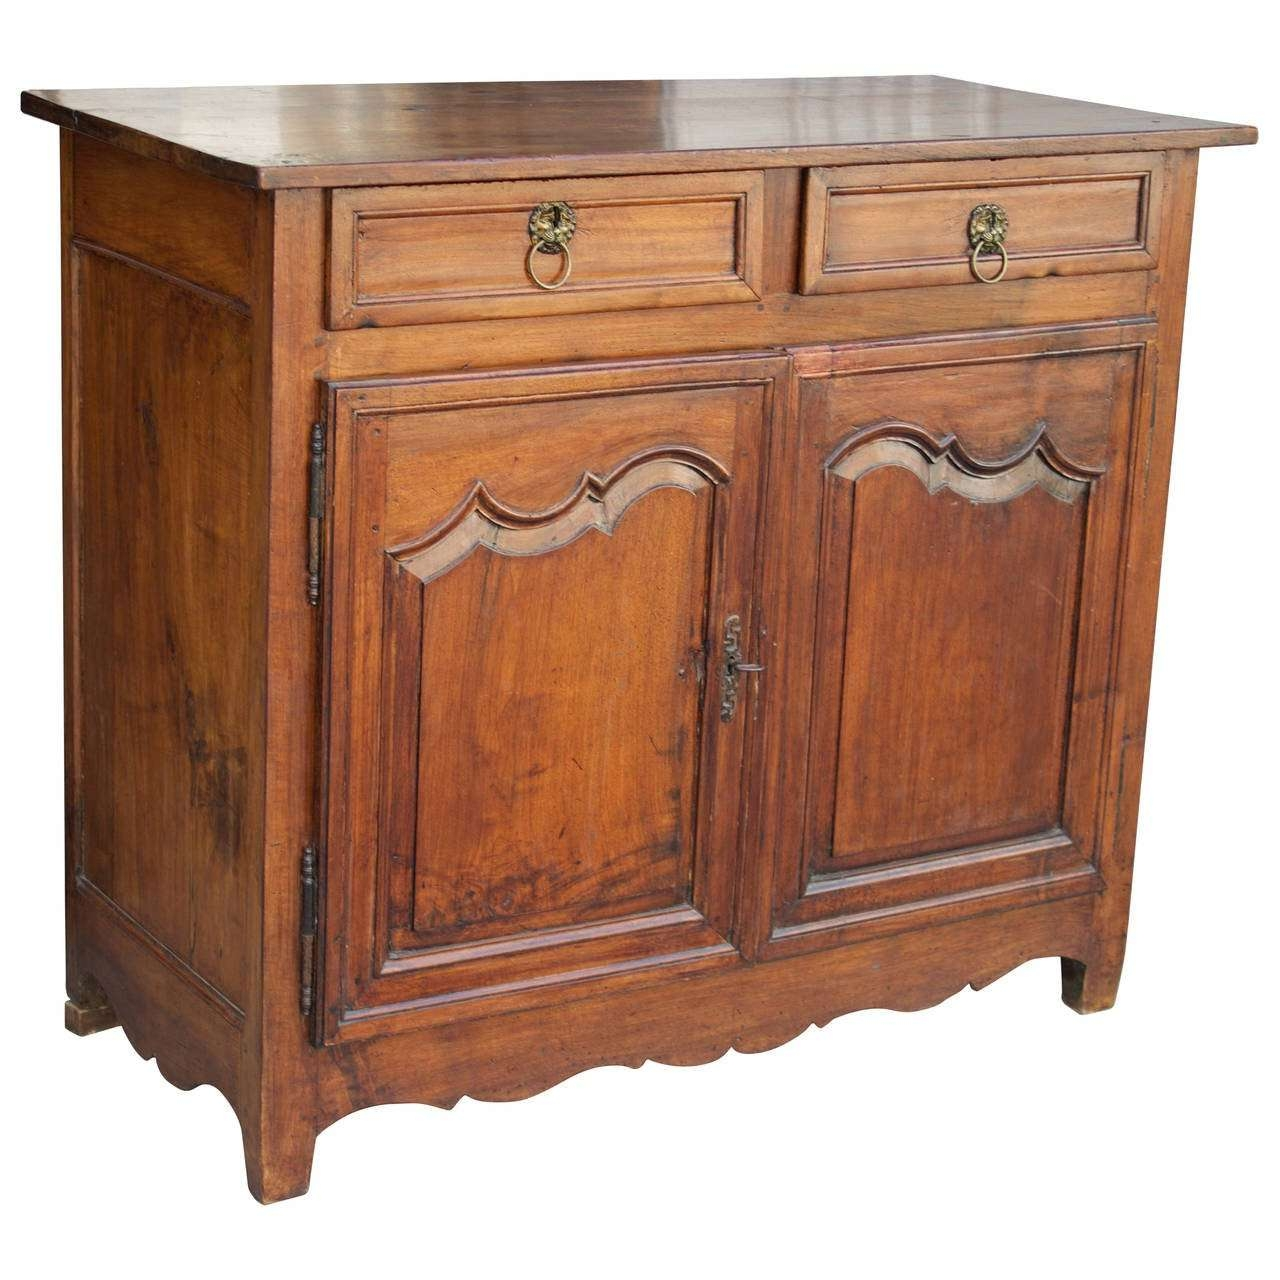 18Th Century French Country Louis Xiv Walnut Buffet Or Sideboard Pertaining To French Country Sideboards (Gallery 7 of 20)